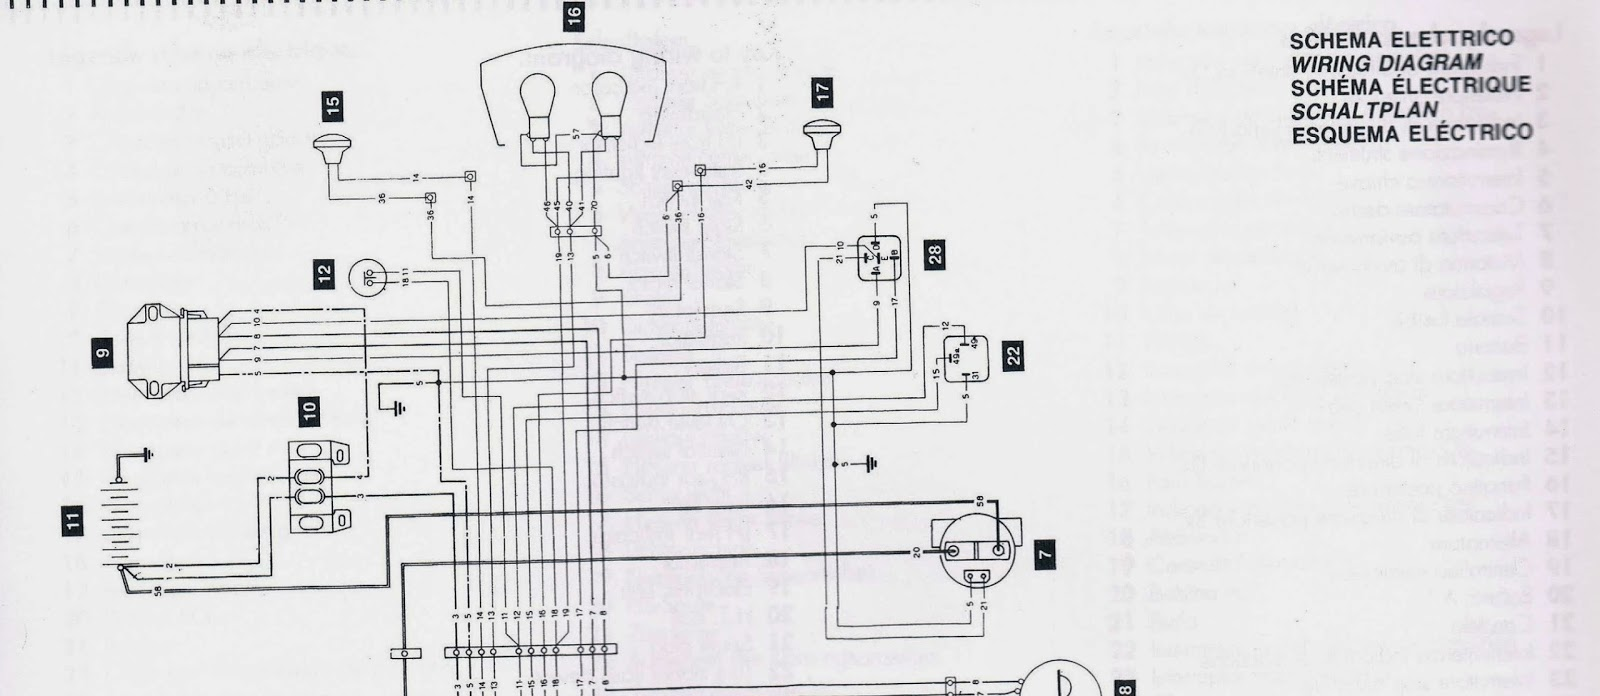 Cagiva Mito 125 Wiring Diagrams Electrics Evo E Bike 24v Diagram Manual